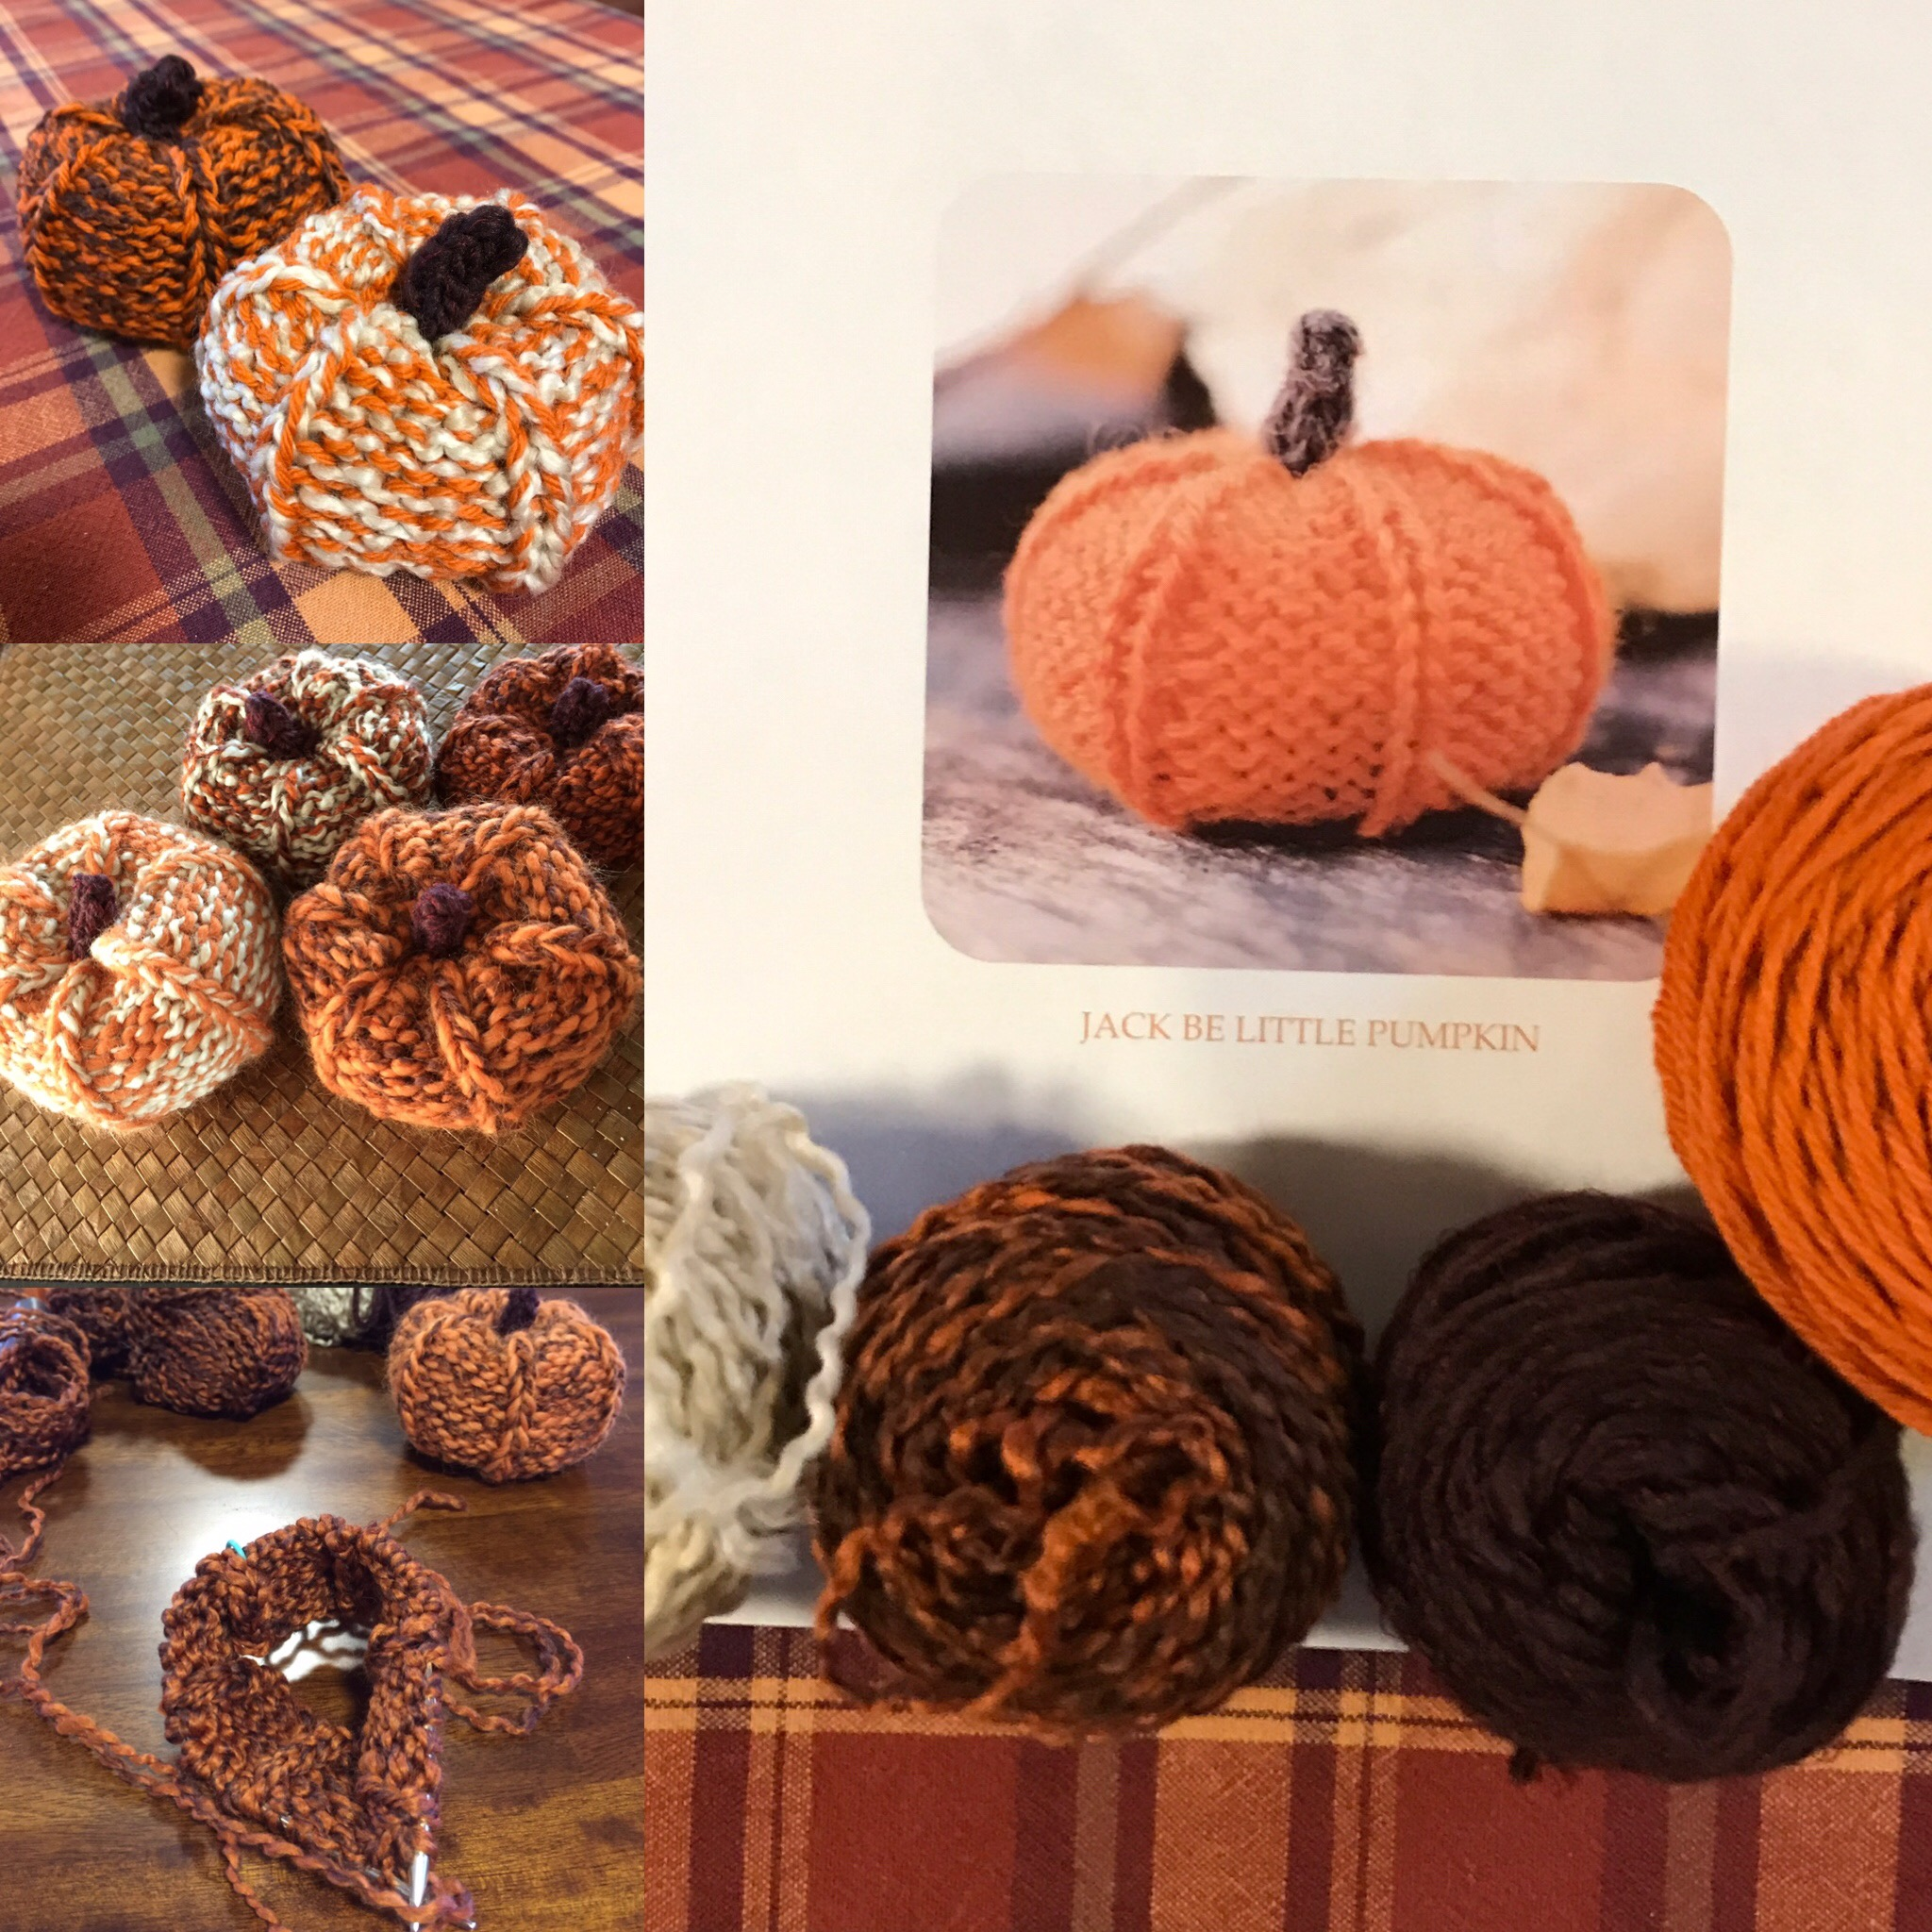 Autumn Pumpkin Kit